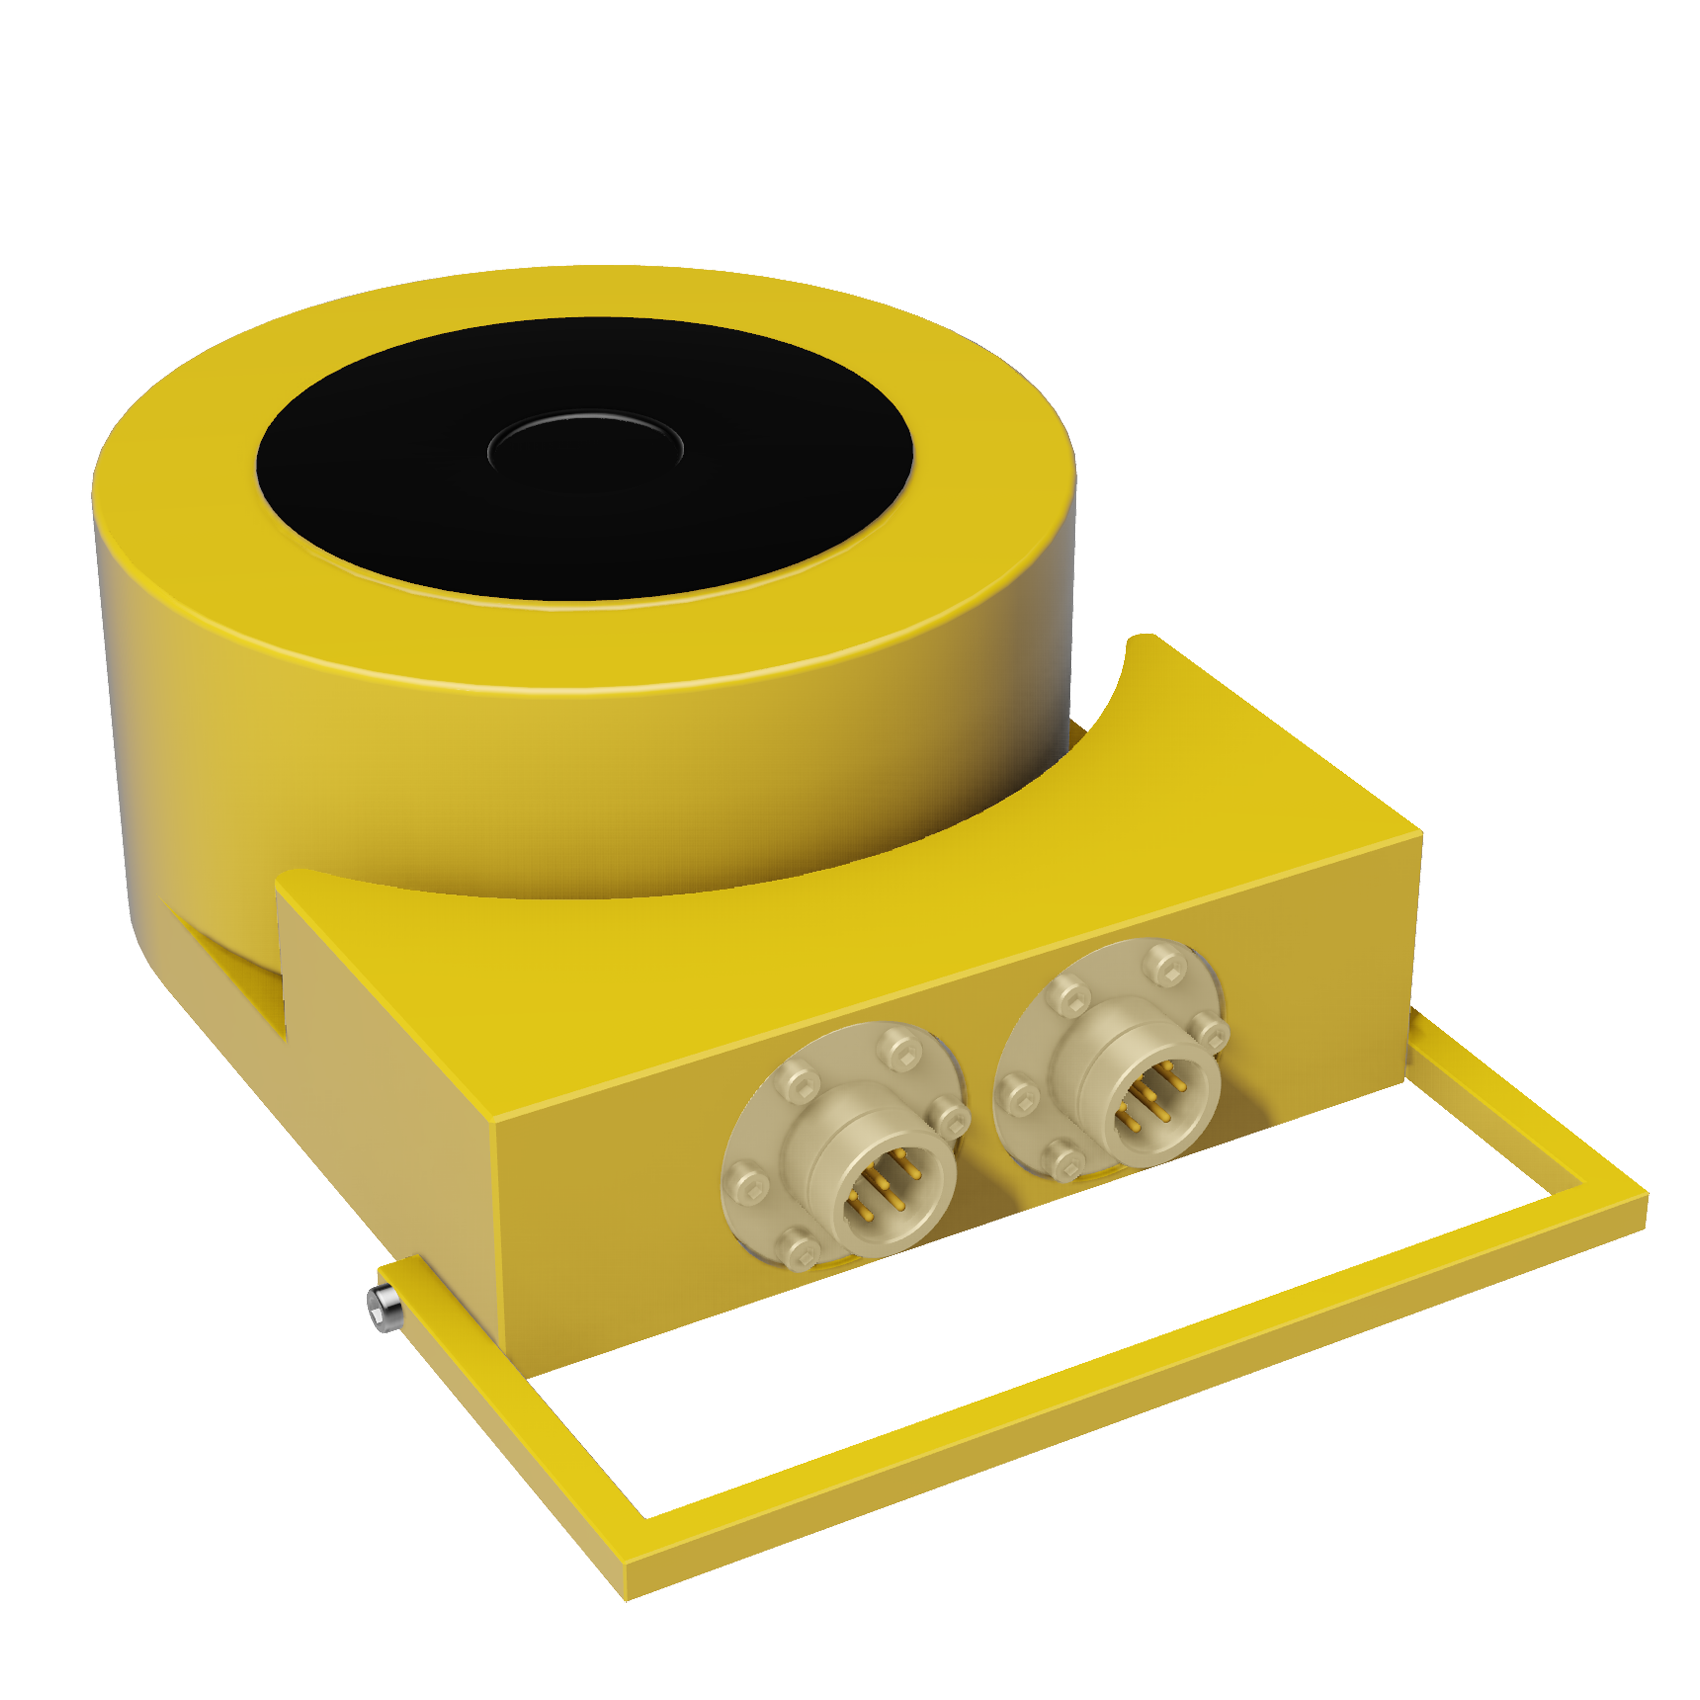 Subsea load cell scansense. Compression png jpg transparent